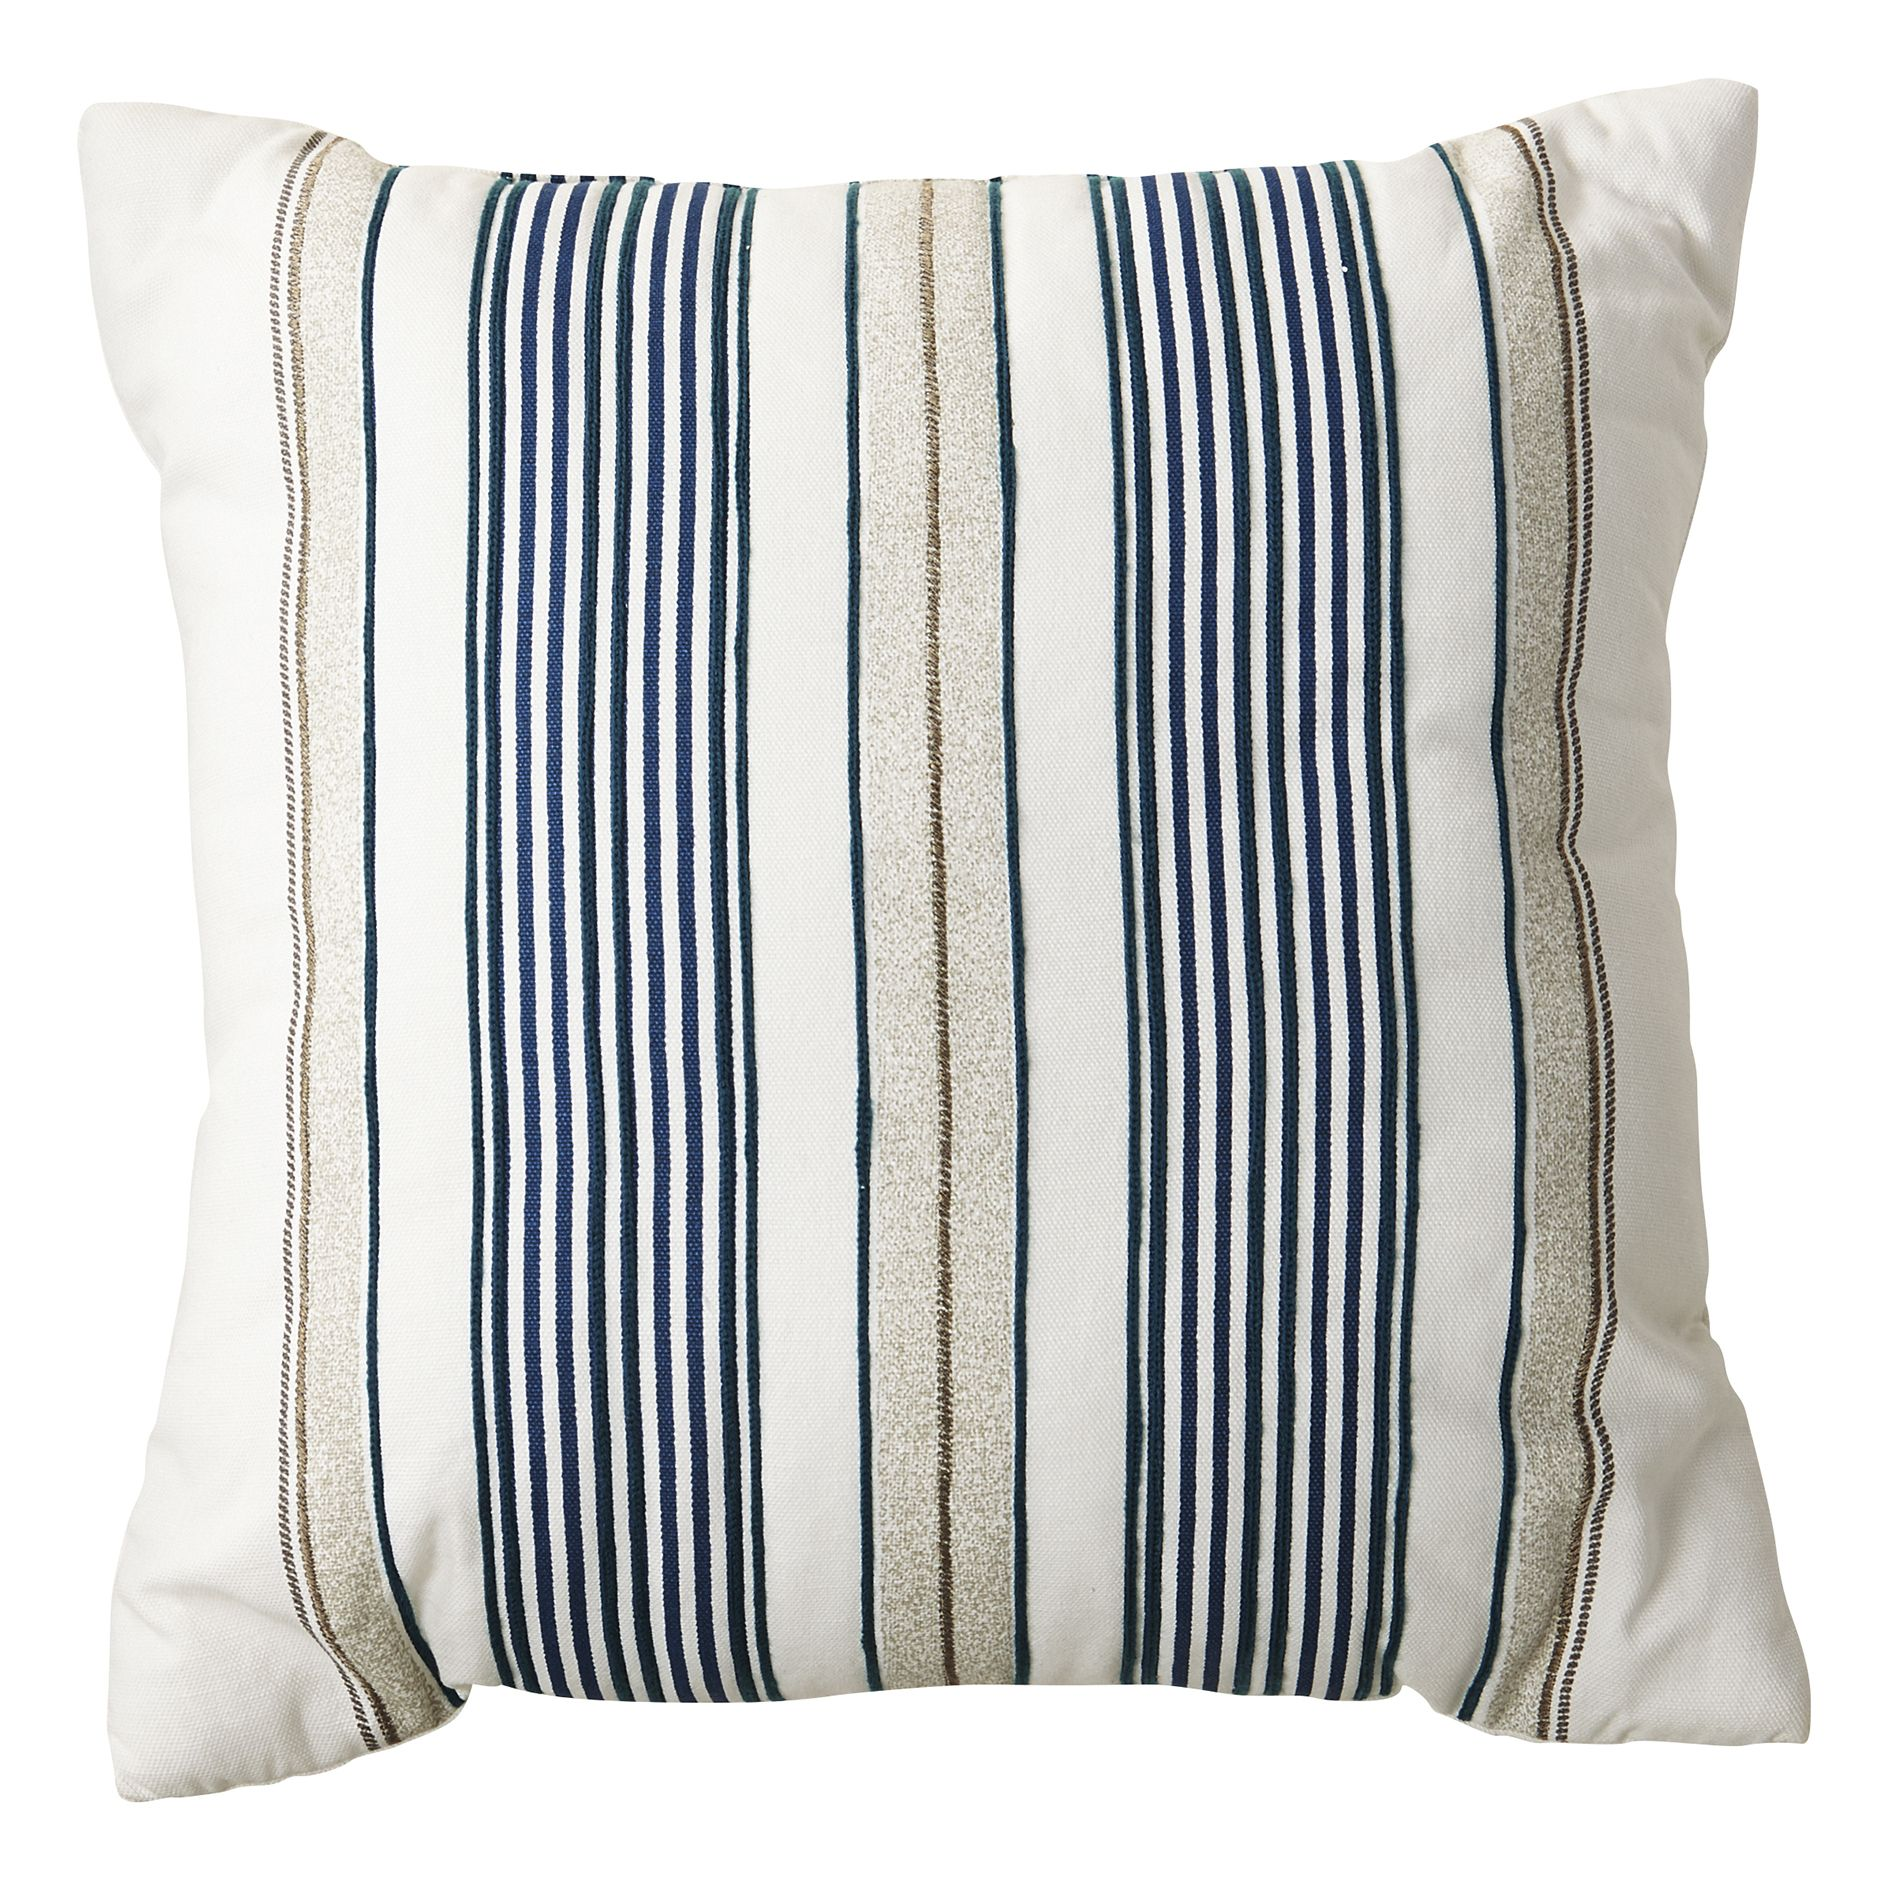 Pin By Vivian Lim On Backyard Blue Pillows Pillows Throw Pillows